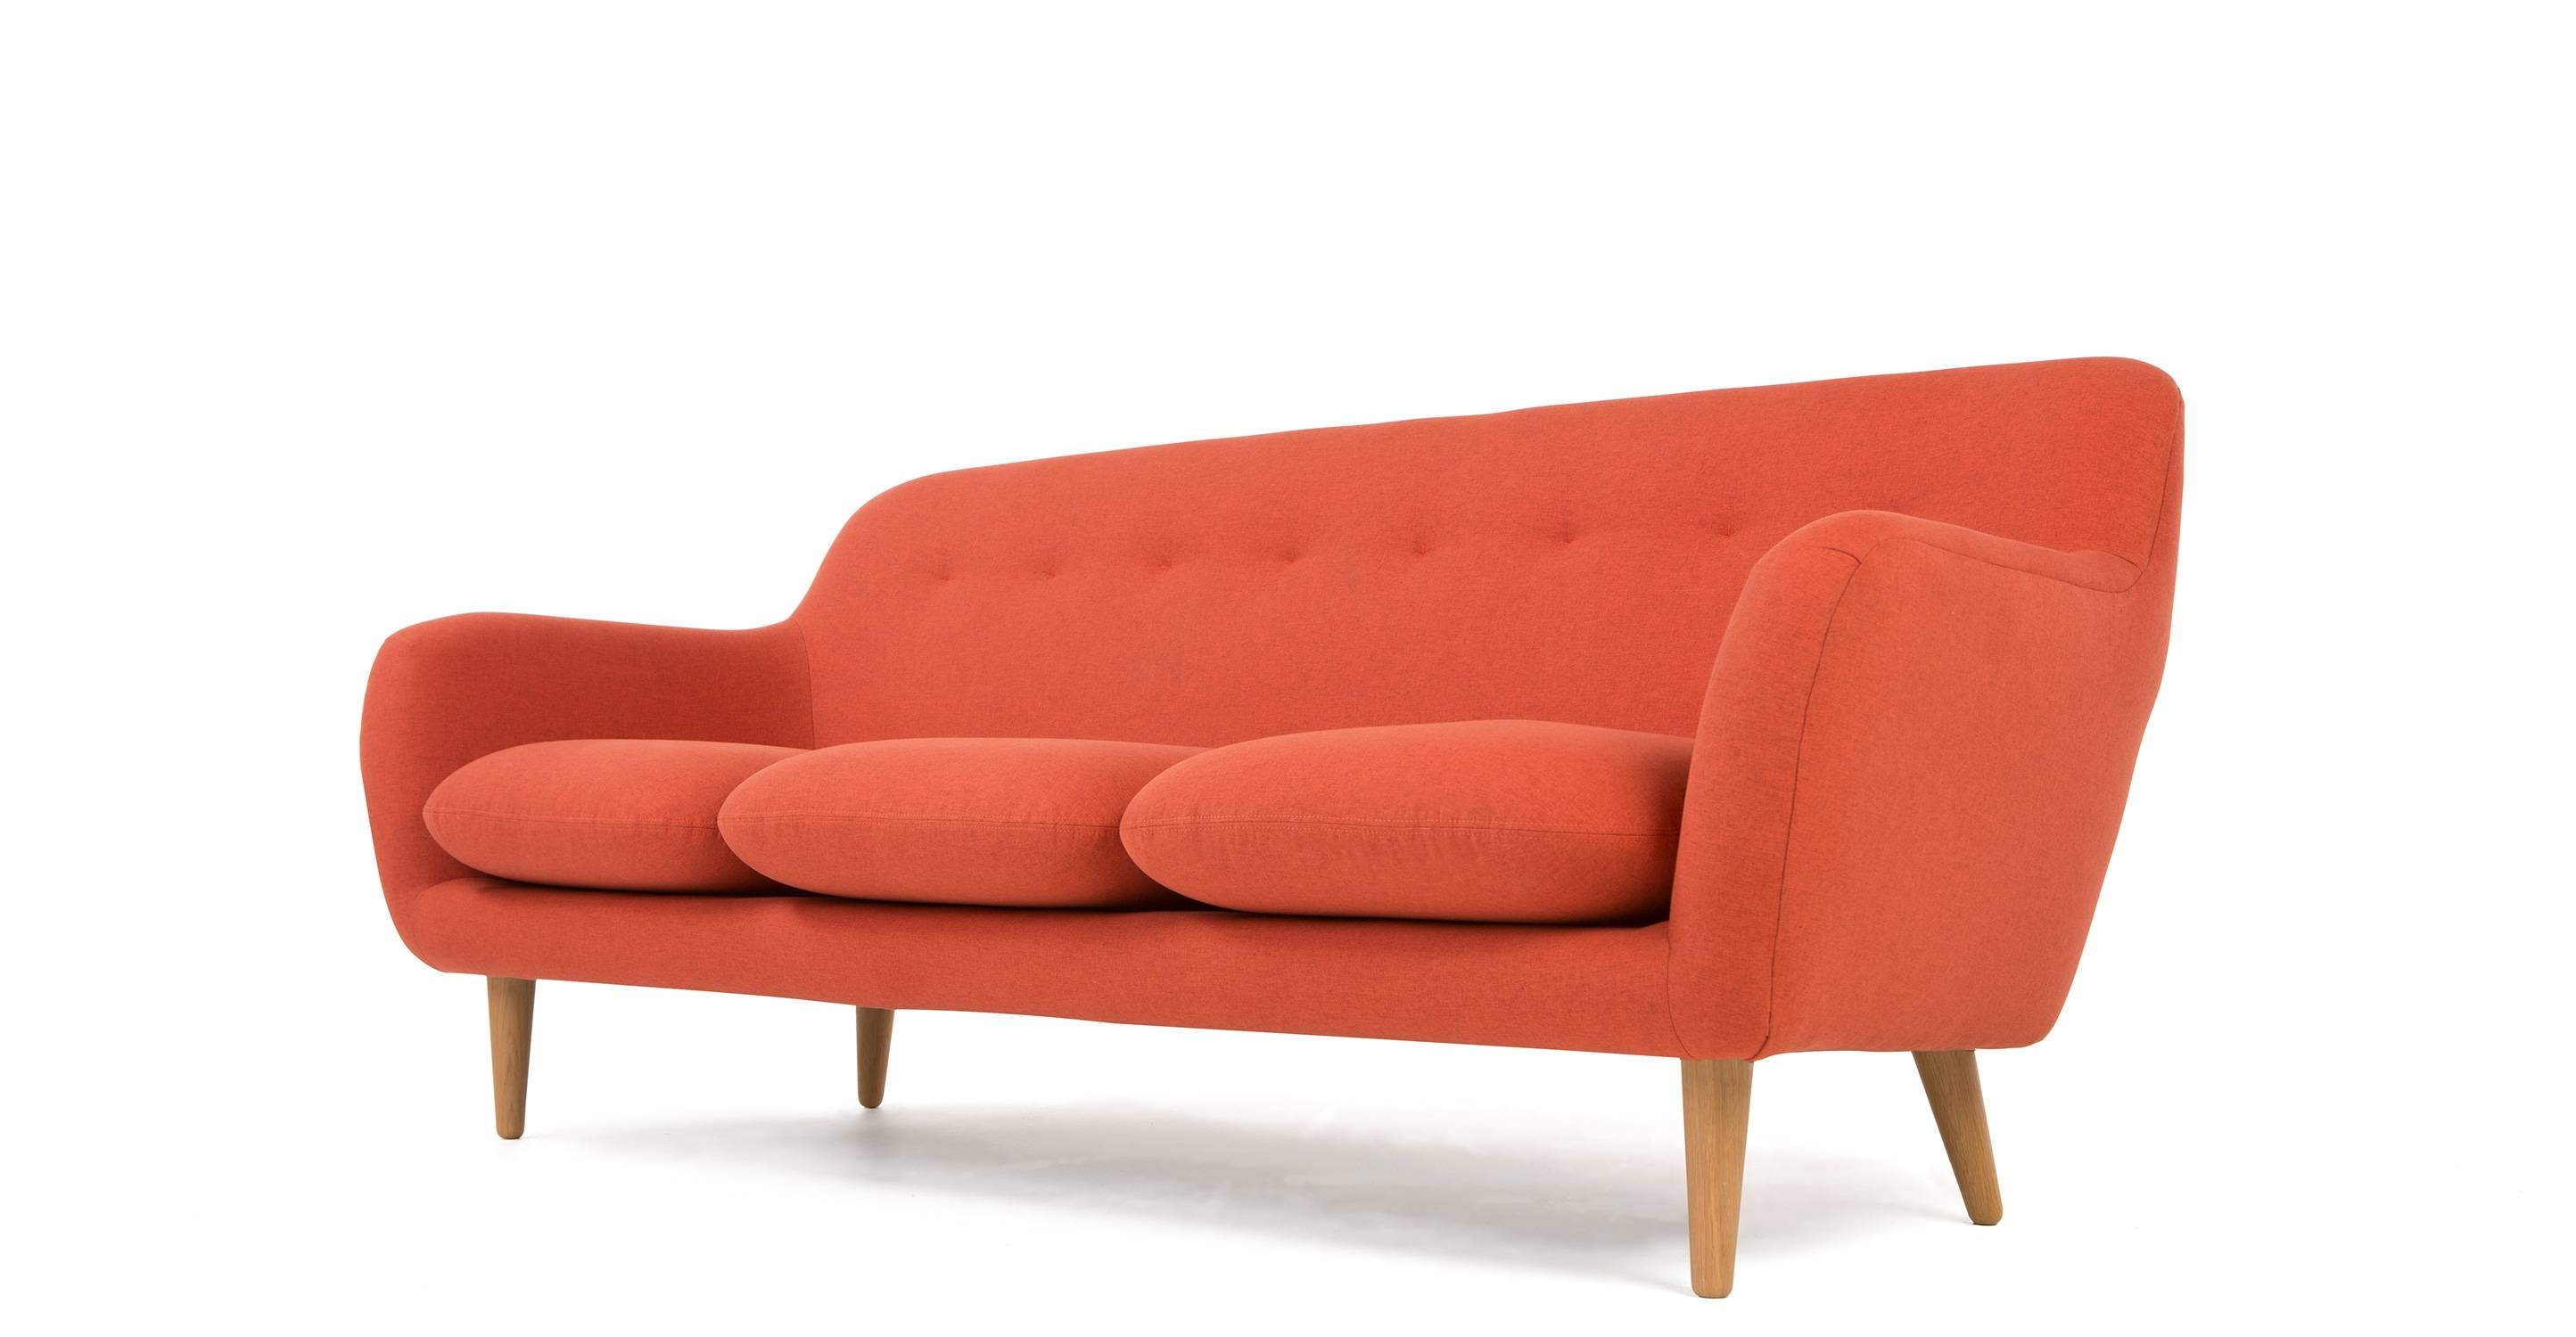 Dylan 3 Seater Sofa, Retro Orange | Made with regard to Retro Sofas And Chairs (Image 5 of 15)